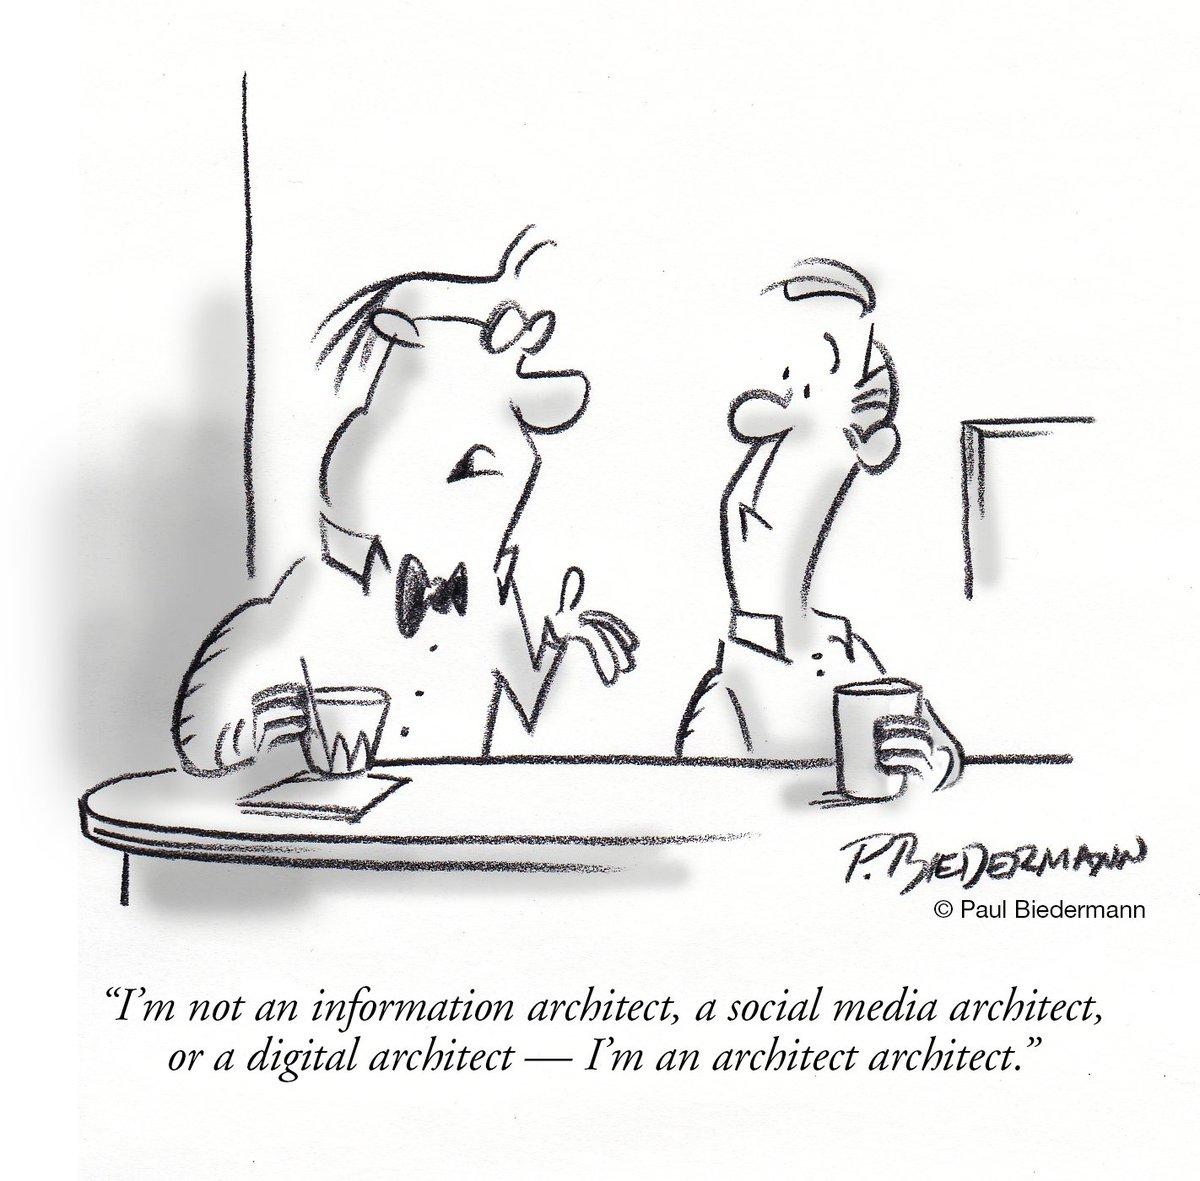 Running into a lot of architects these days? https://t.co/YOct4cmLWS #marketing #cartoon #architecture